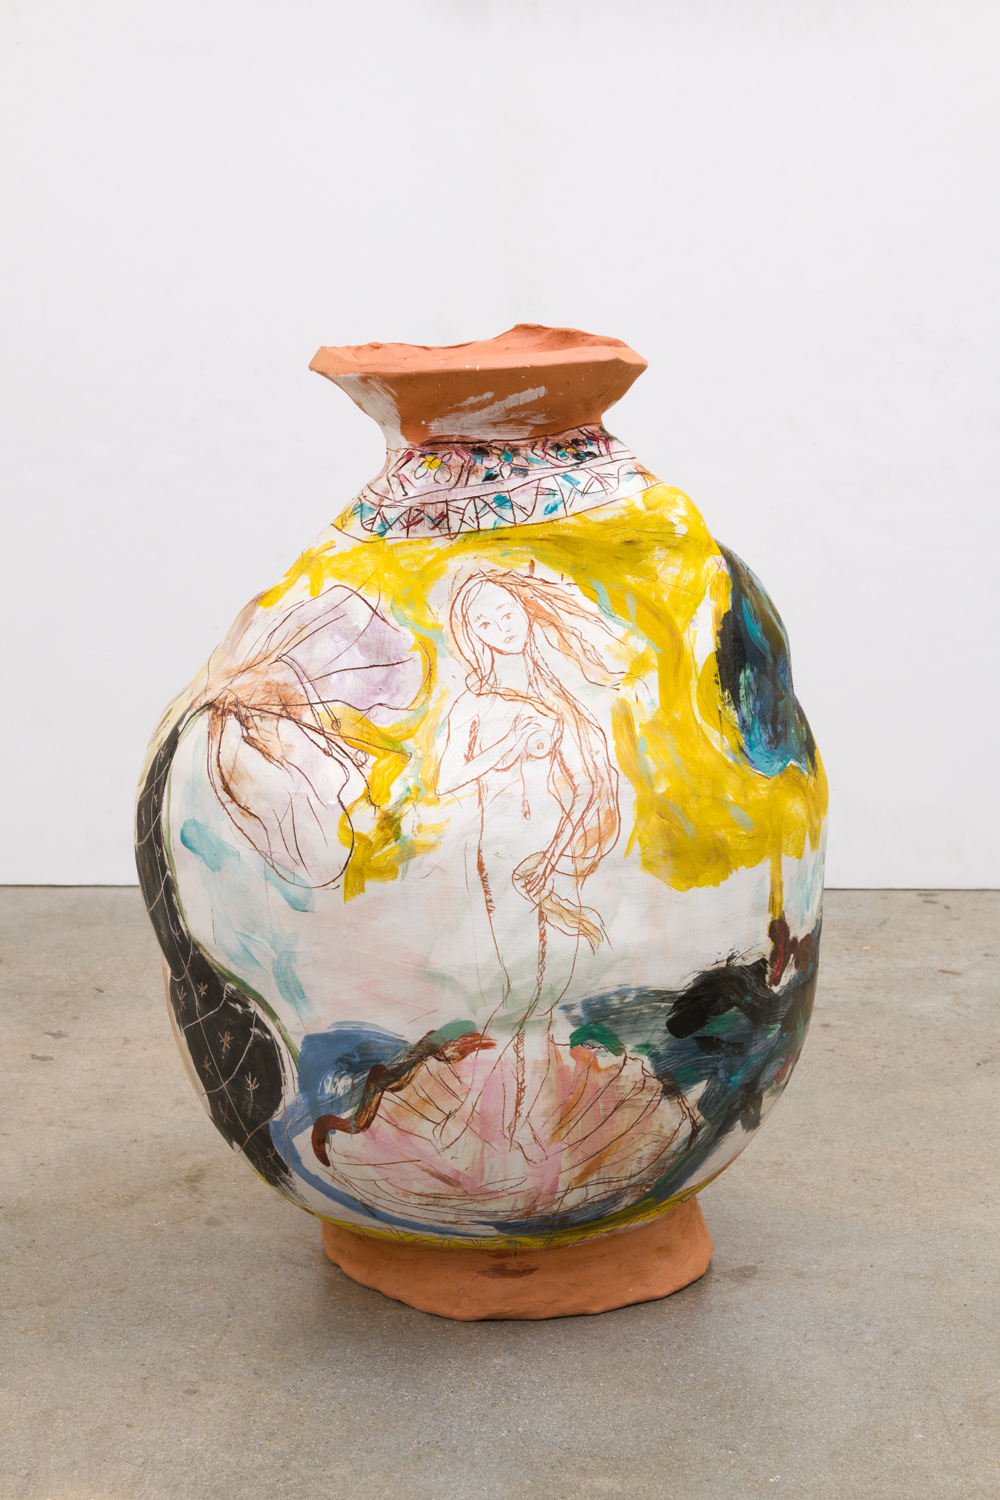 Venus, Shells, Flowers, 2018  Glazed ceramic  17 x 26 1/2 x 23 inches